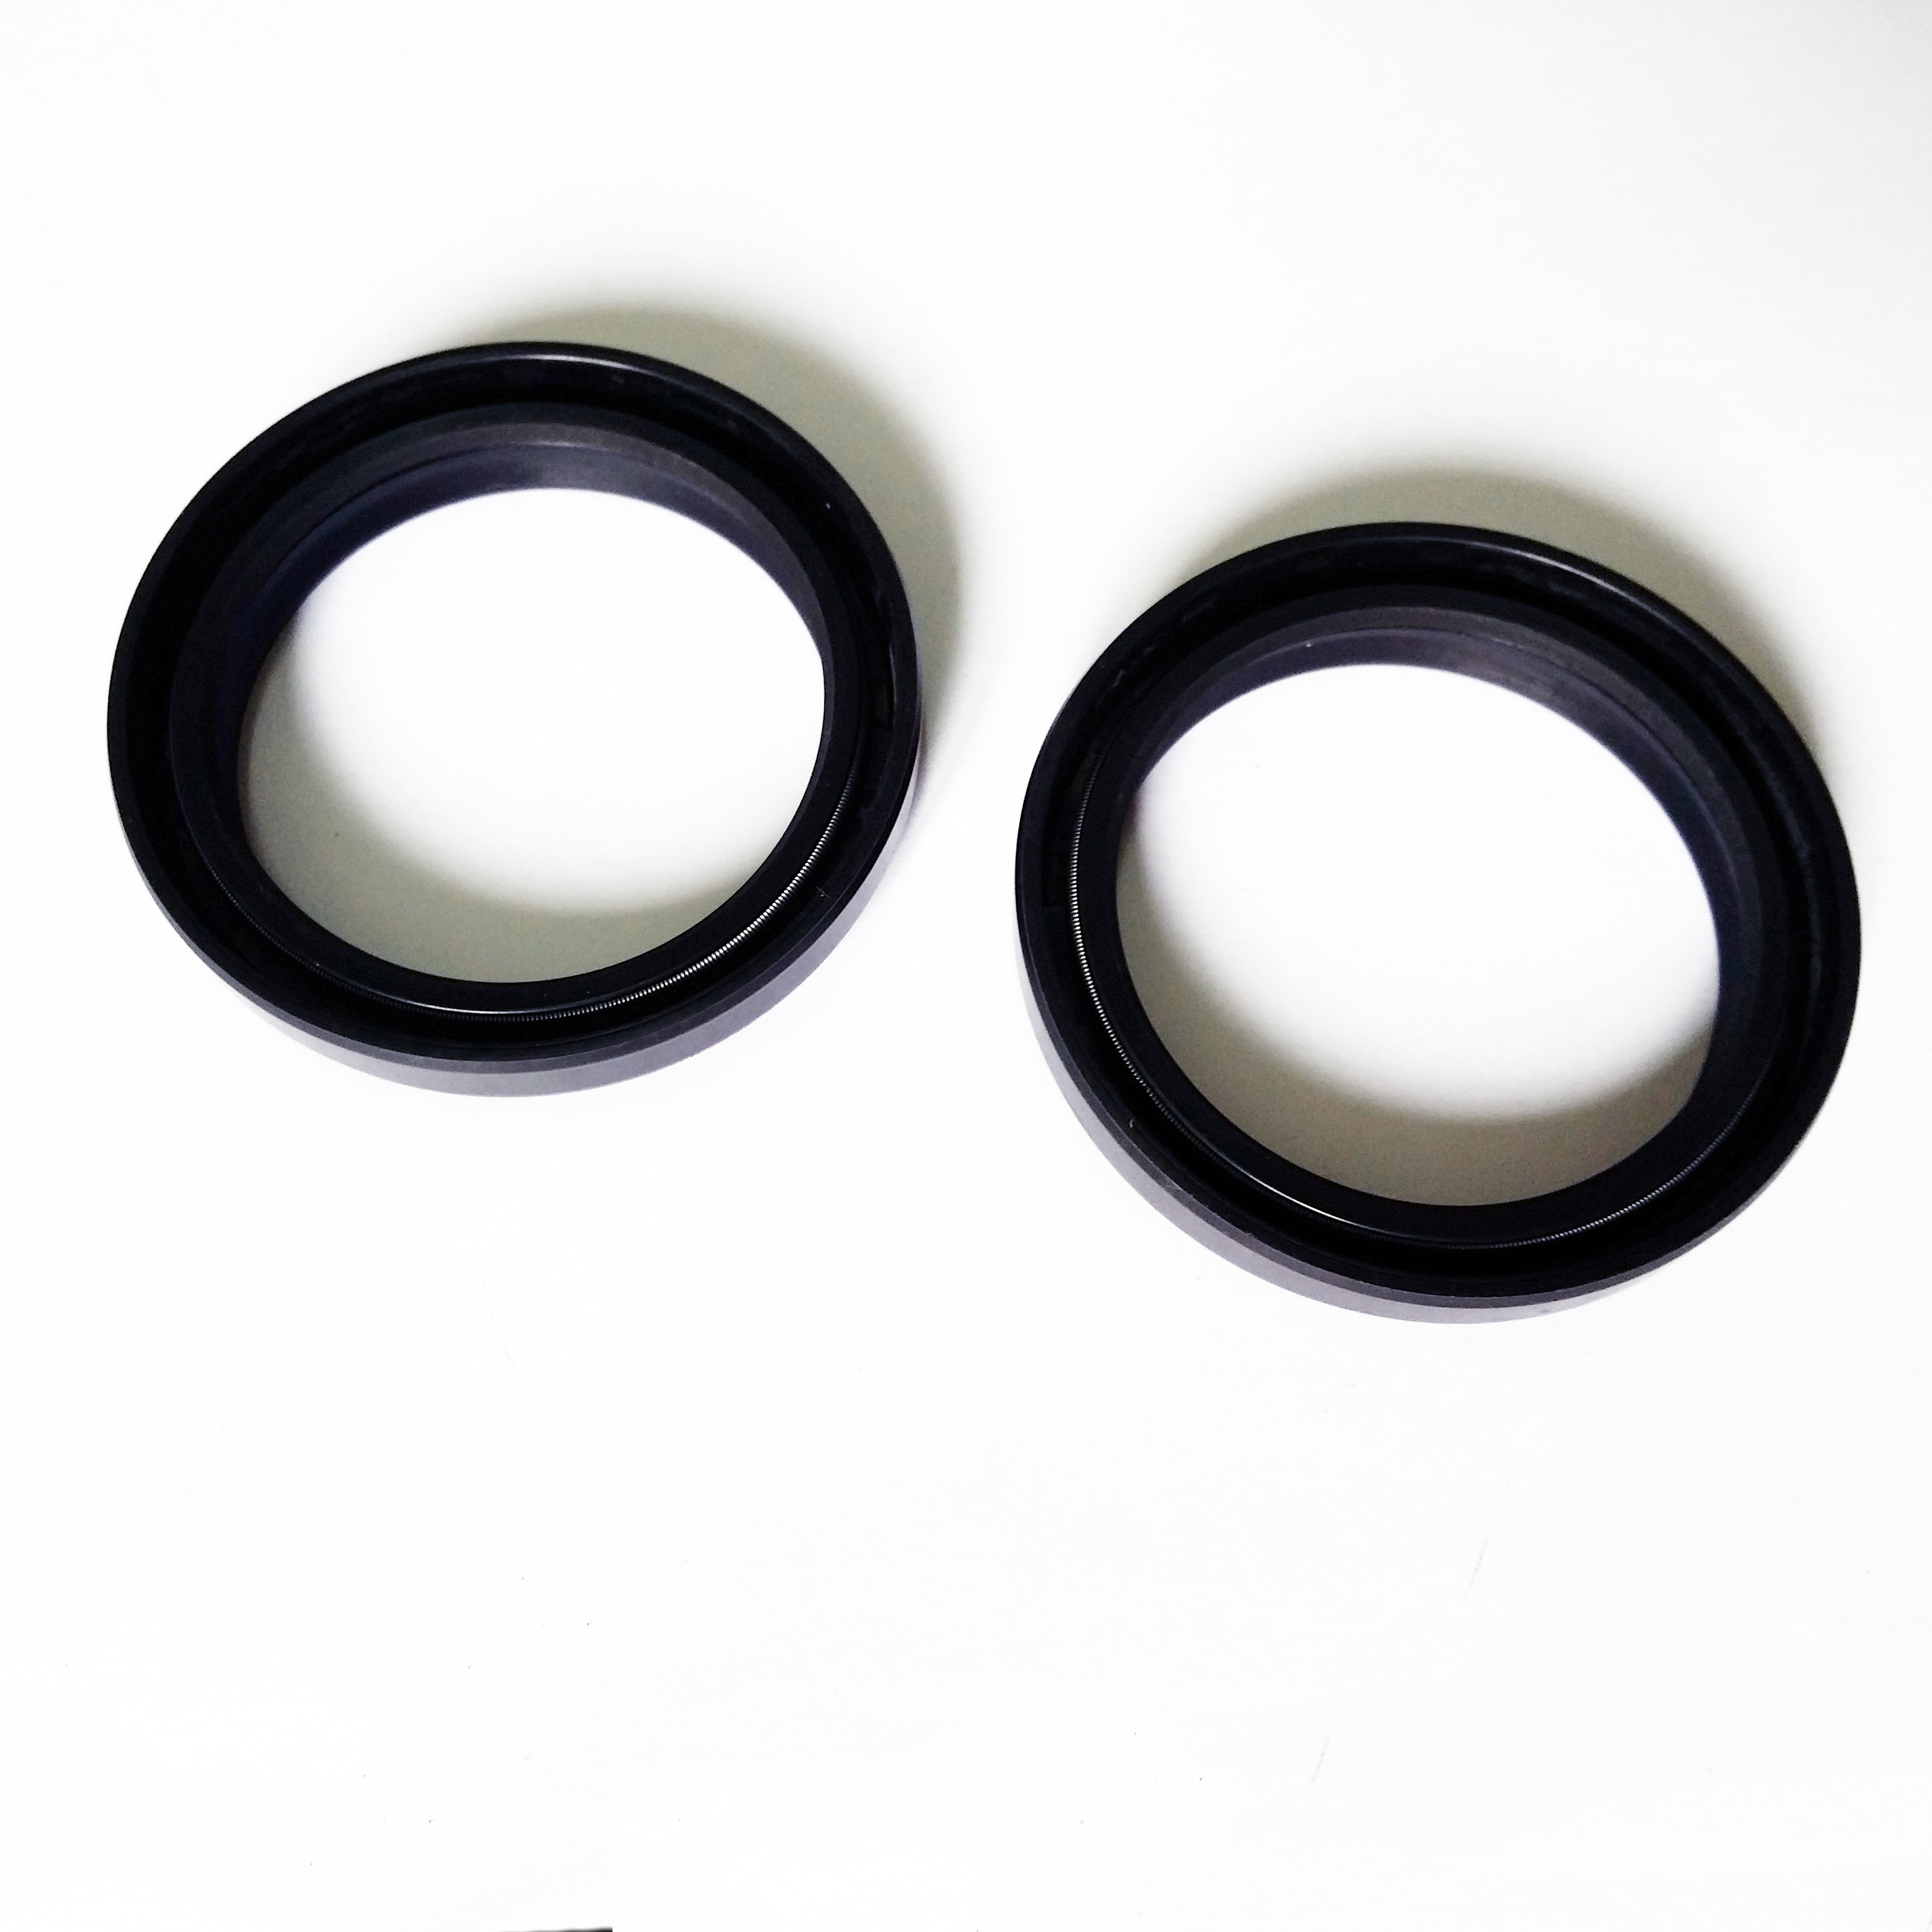 K-Tech Honda CBR600F 1999-2002 NOK Front Fork Oil Seals 43x54x11mm